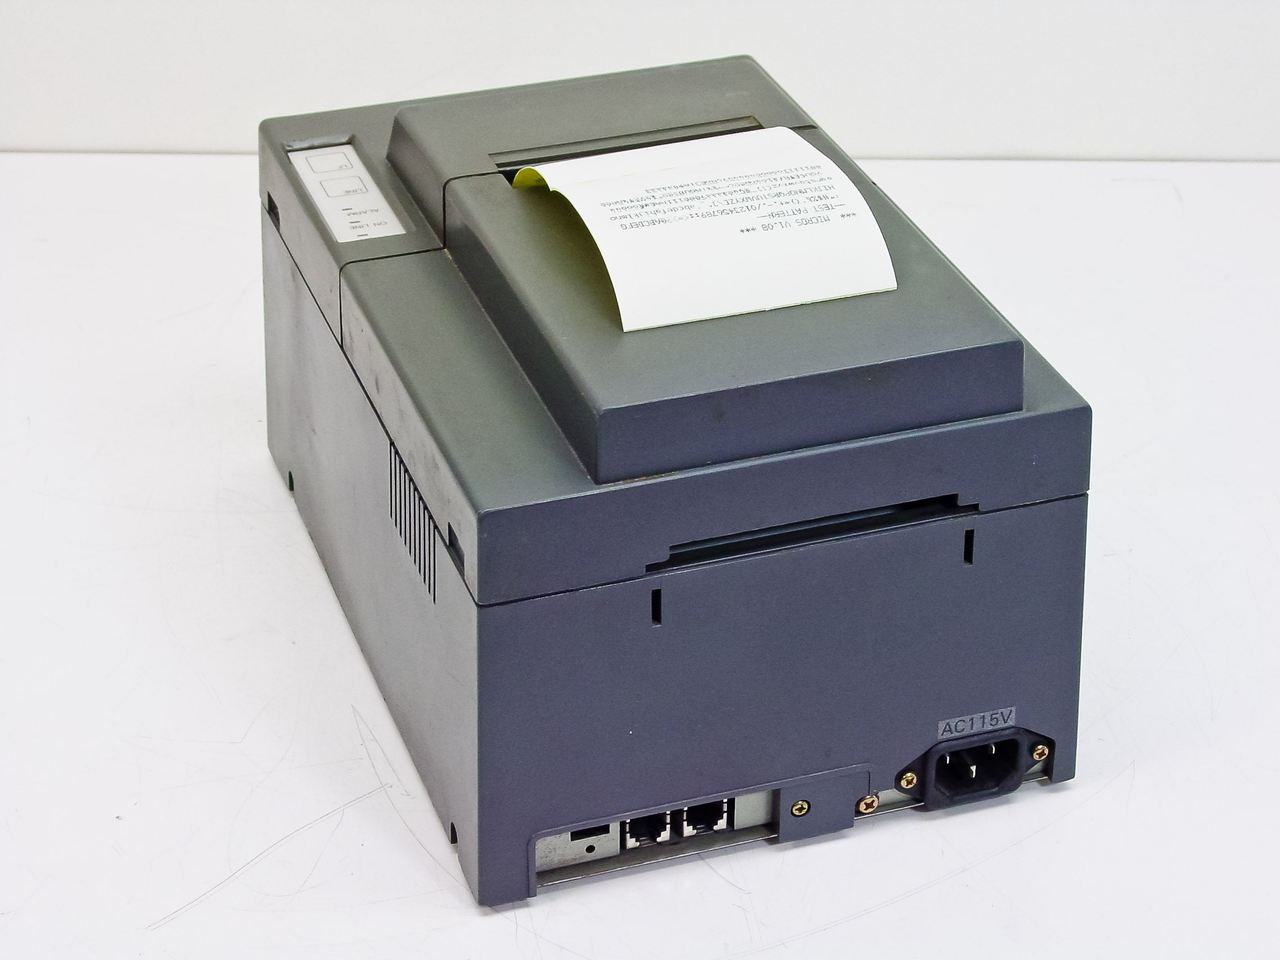 MICROS 385 PRINTER DOWNLOAD DRIVERS